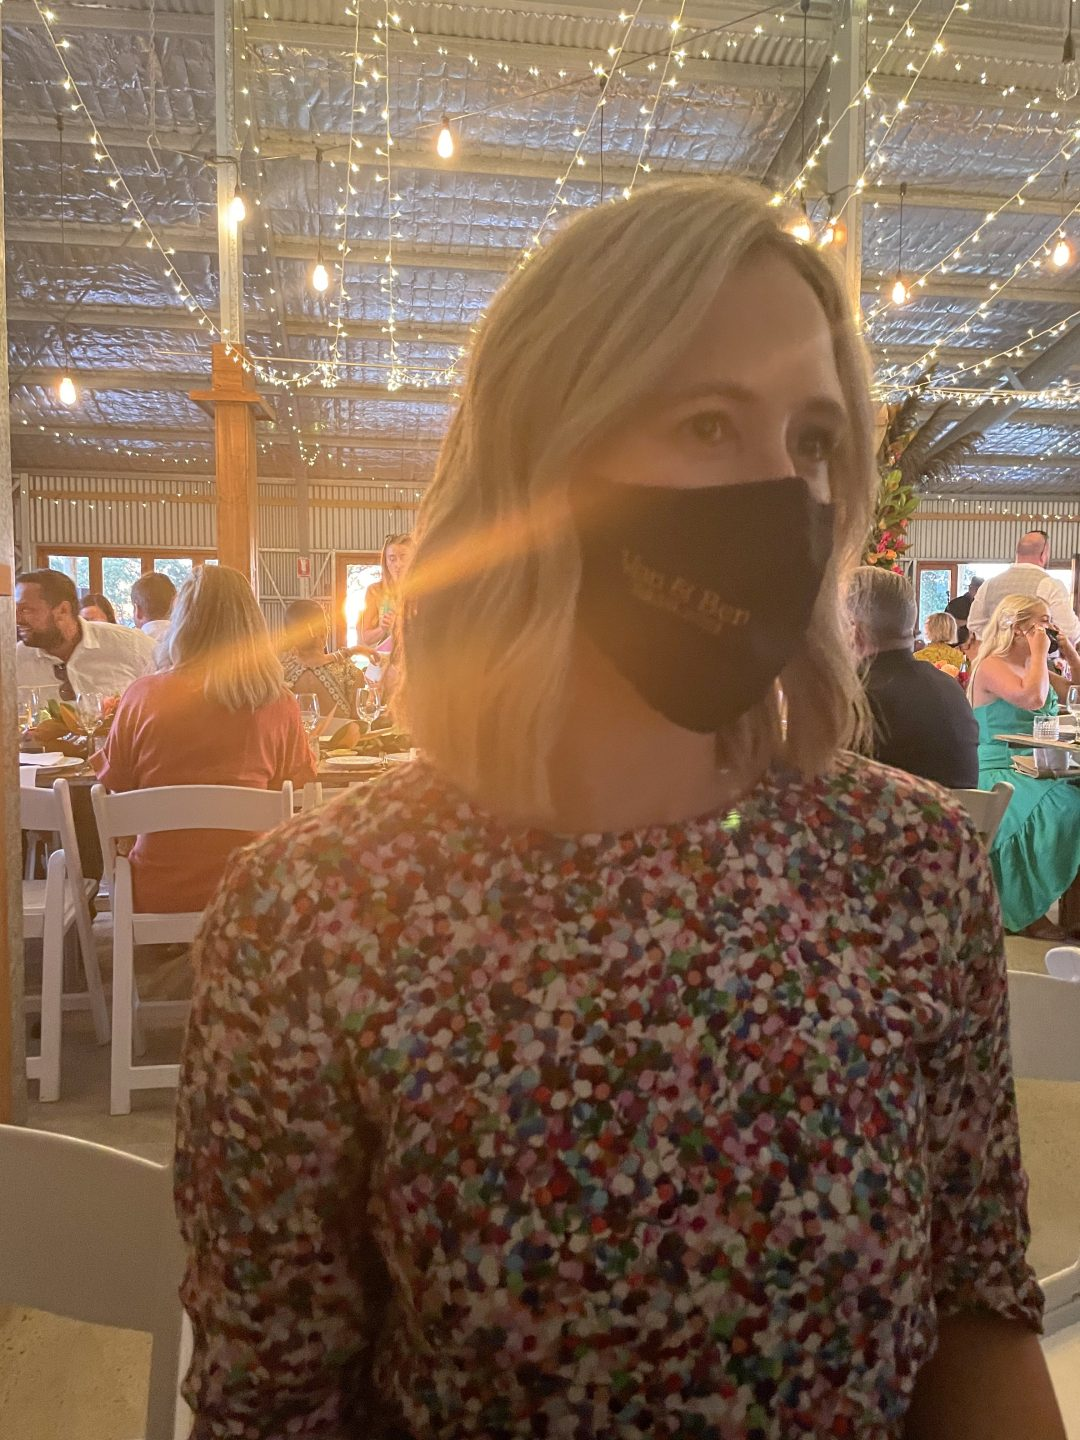 a woman with blonde hair at a wedding with a black face mask on.